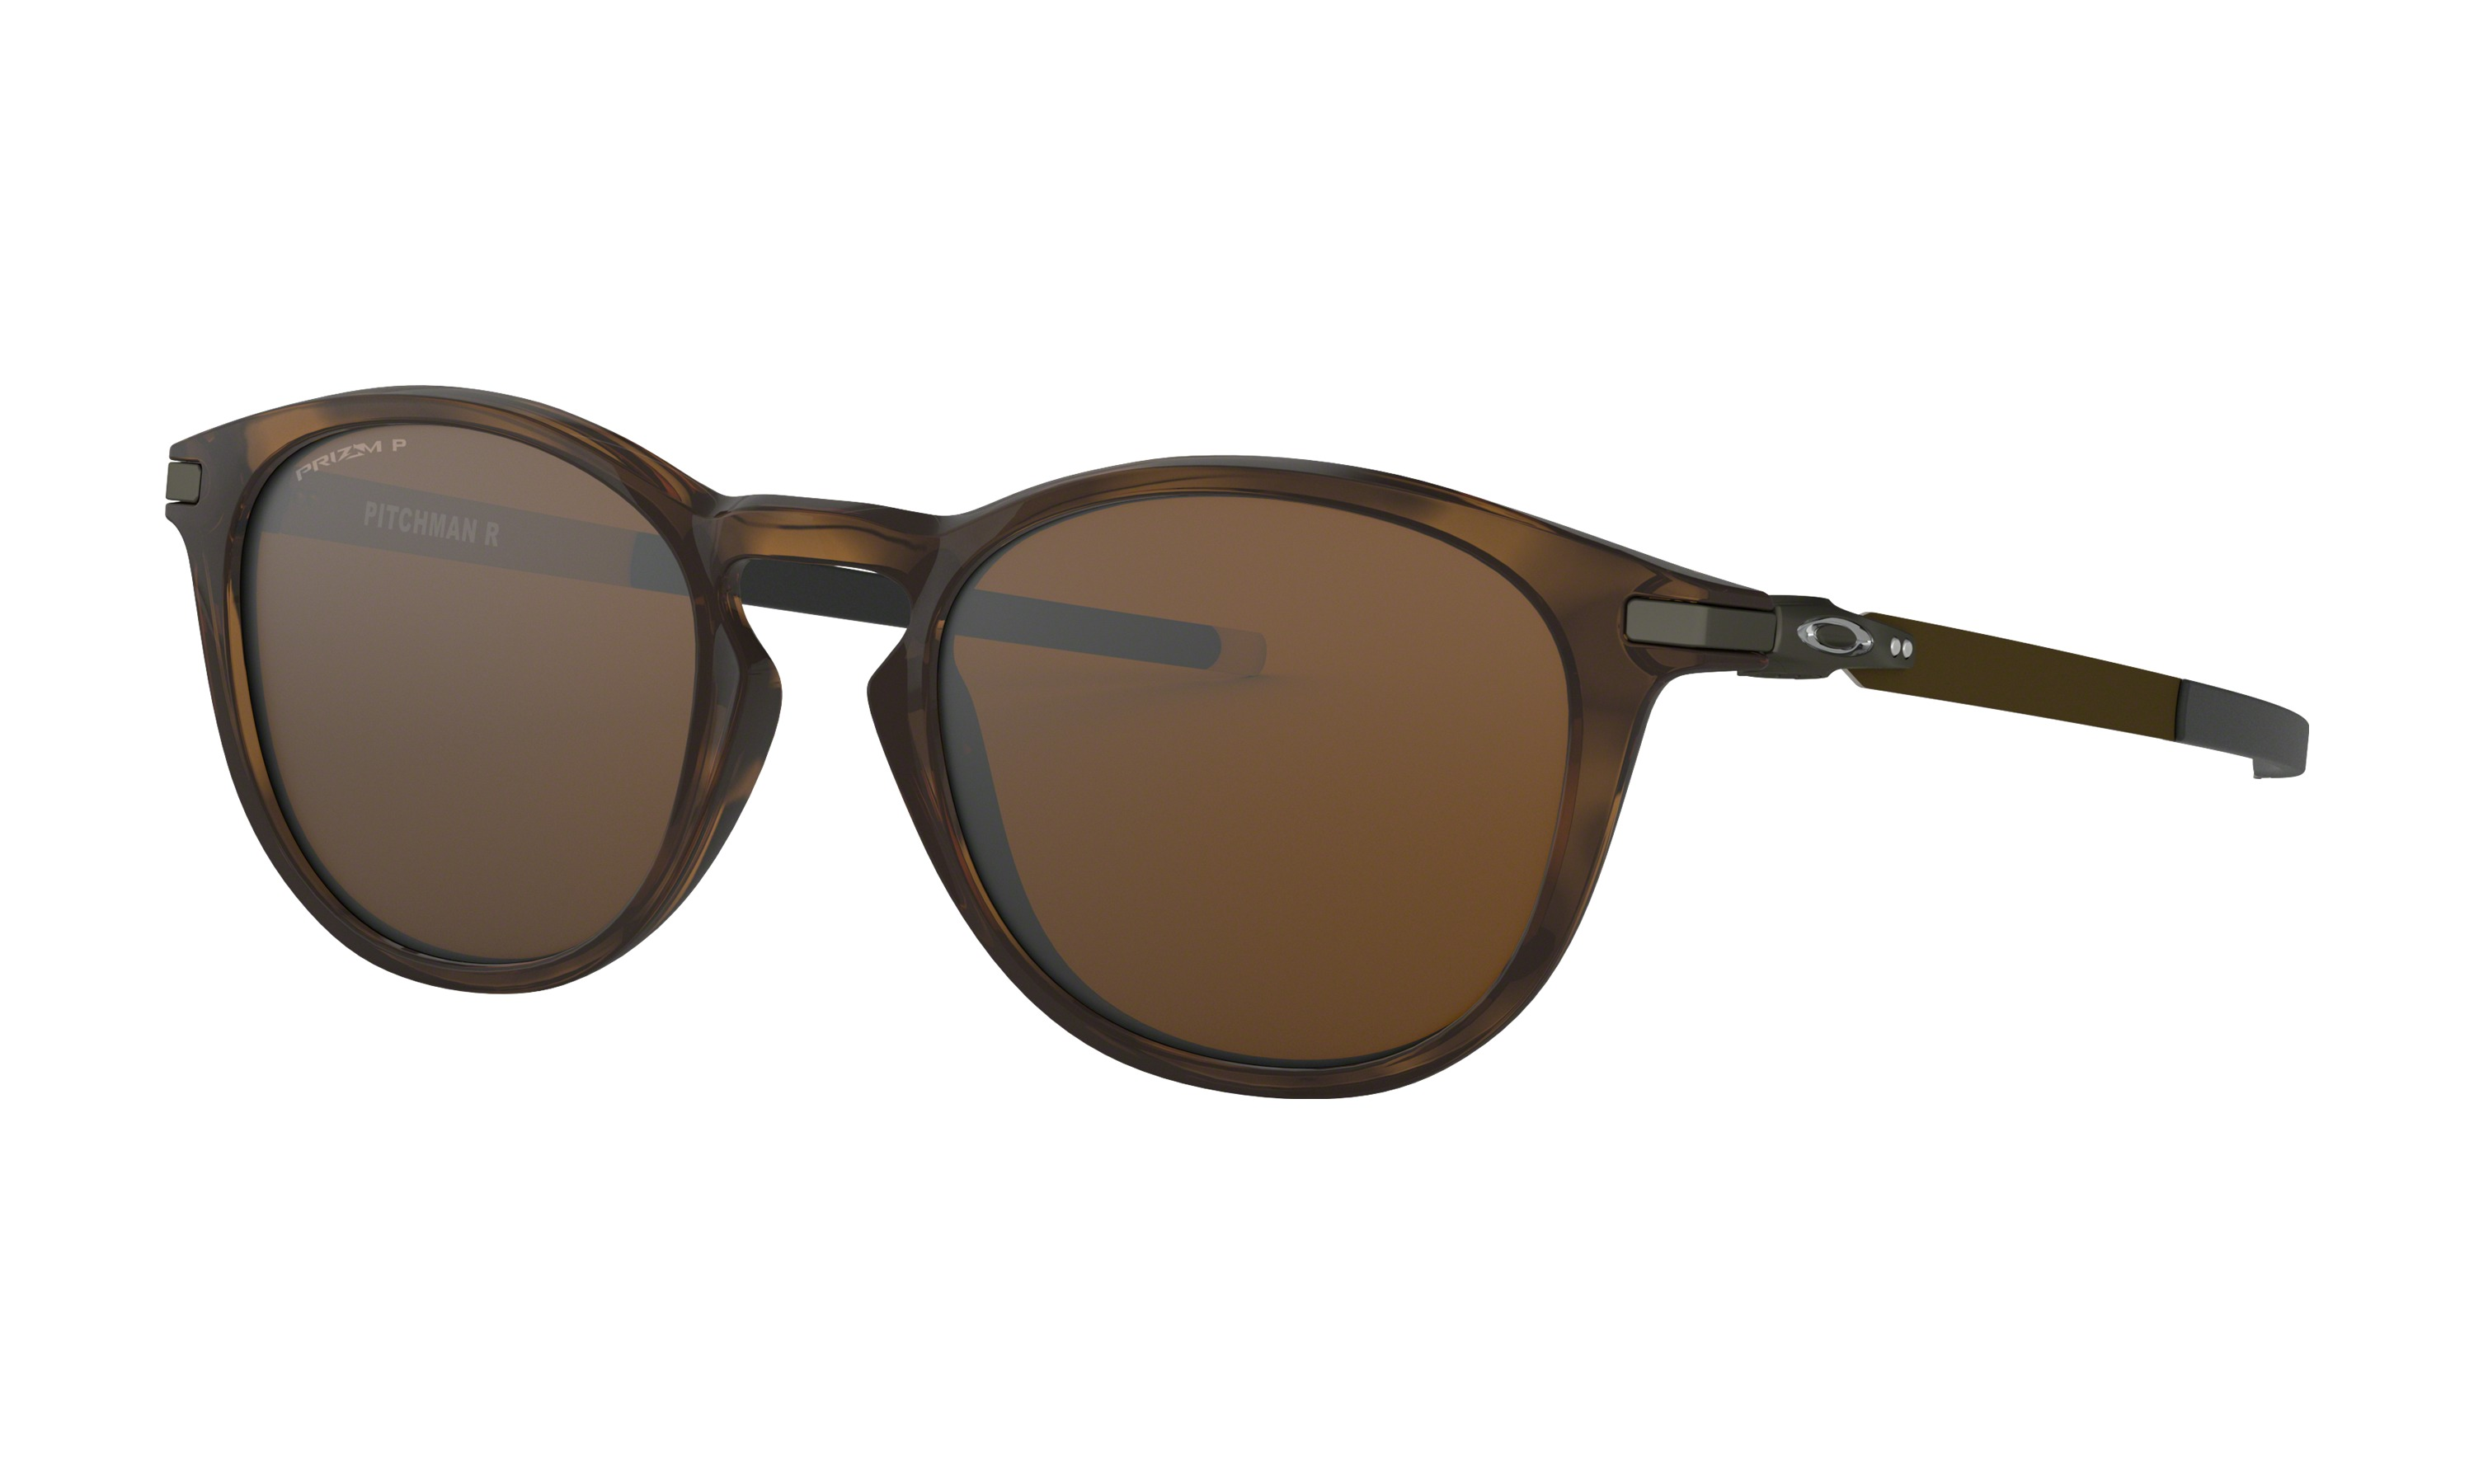 main_oo9439-0650_pitchman-r_polished-brown-tortoise-prizm-tungsten-polarized_001_144985_png_zoom.jpg